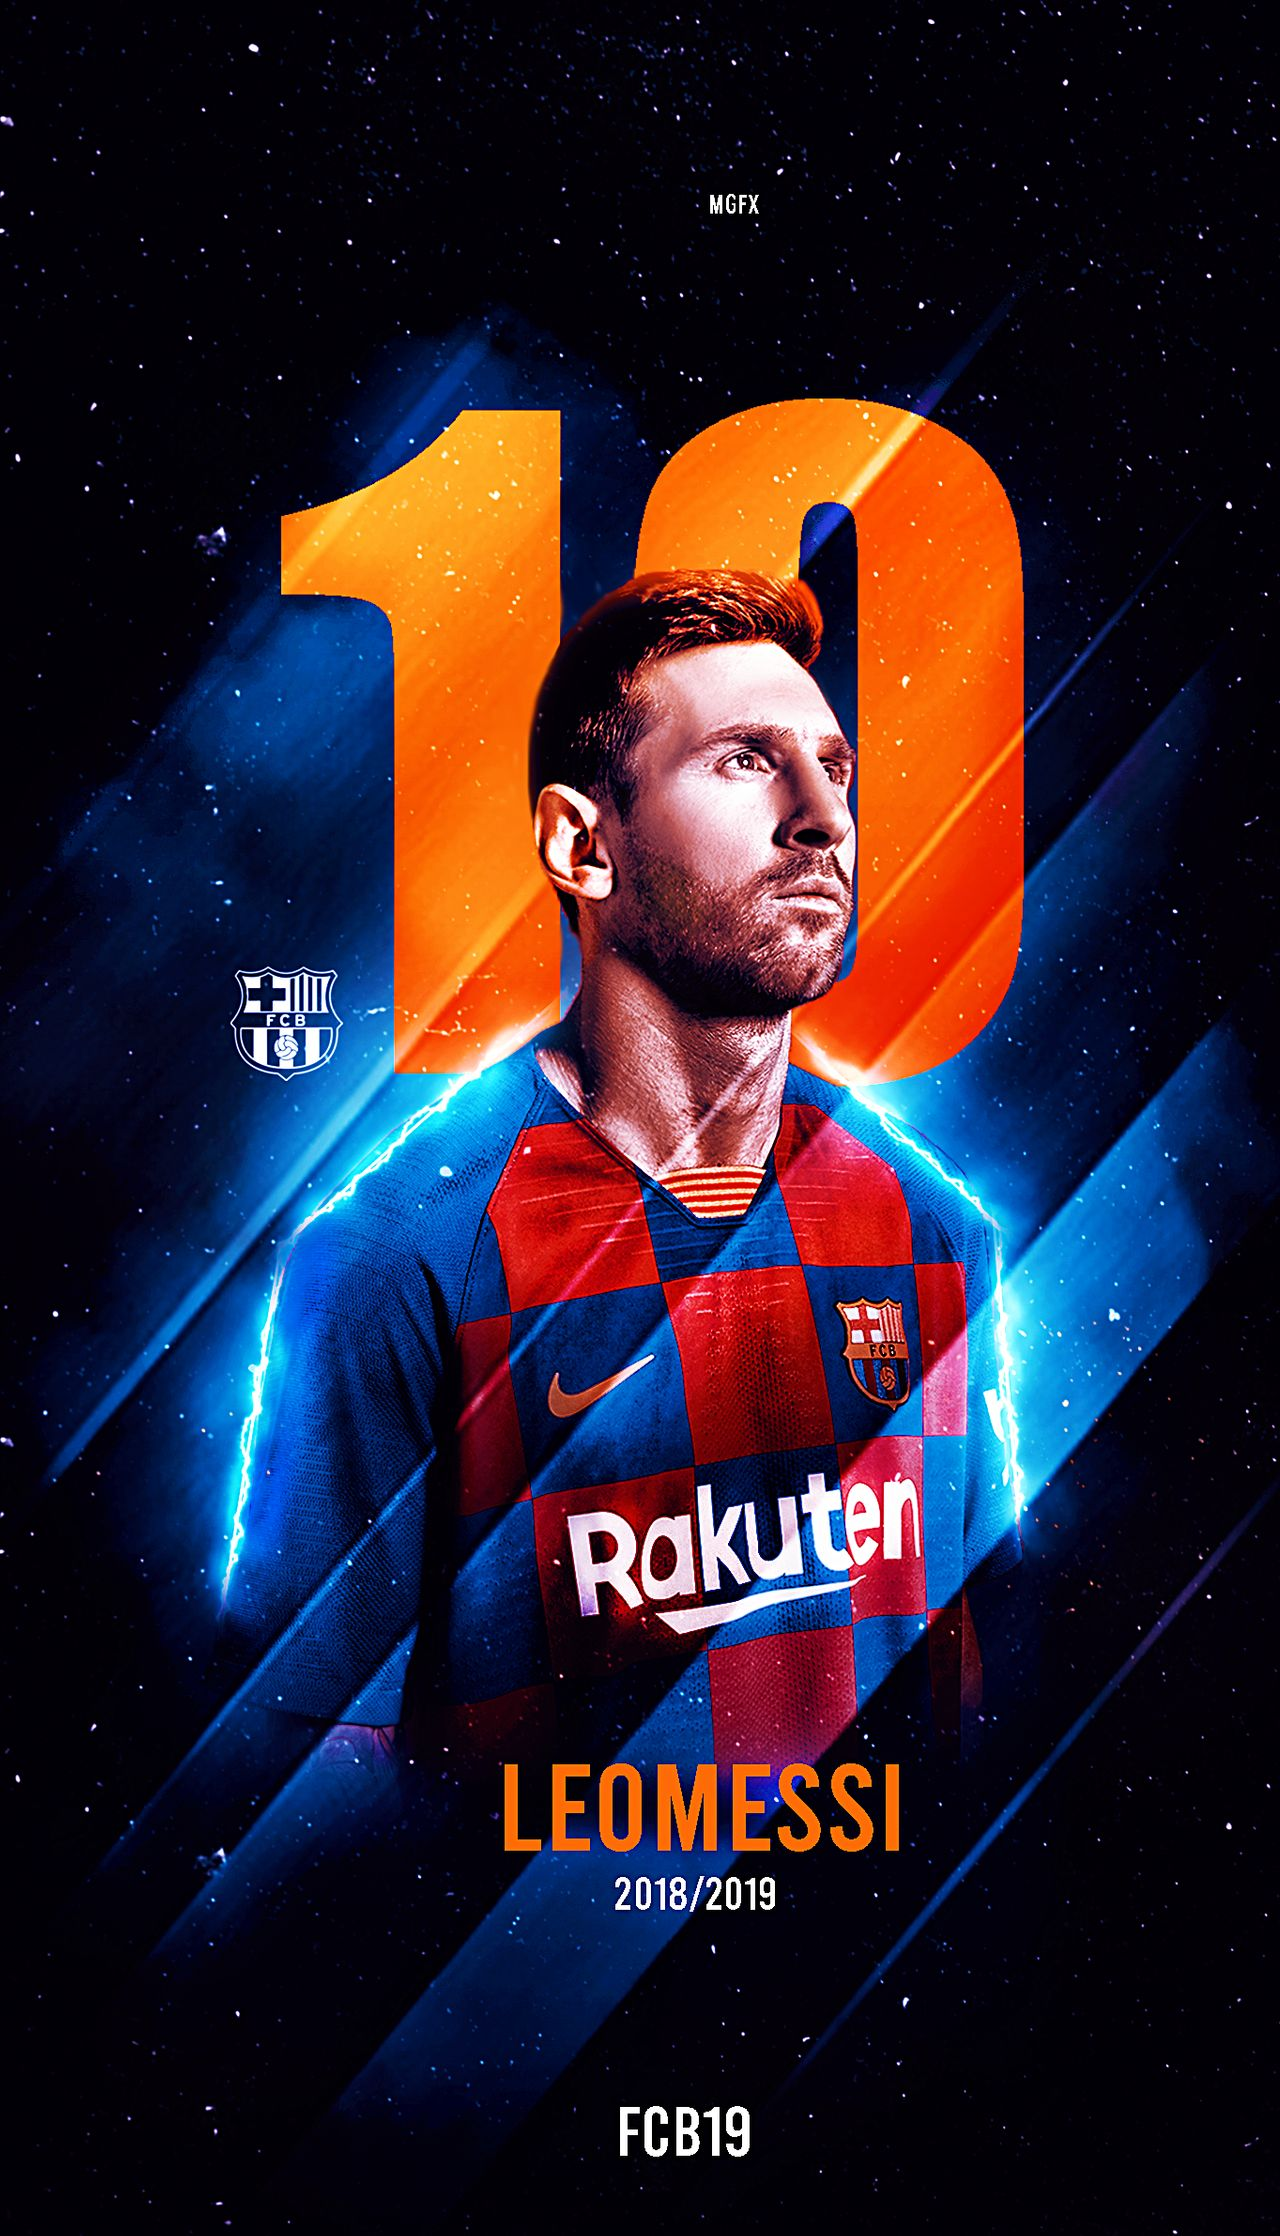 Lionel Messi Wallpaper Posted By Ethan Johnson